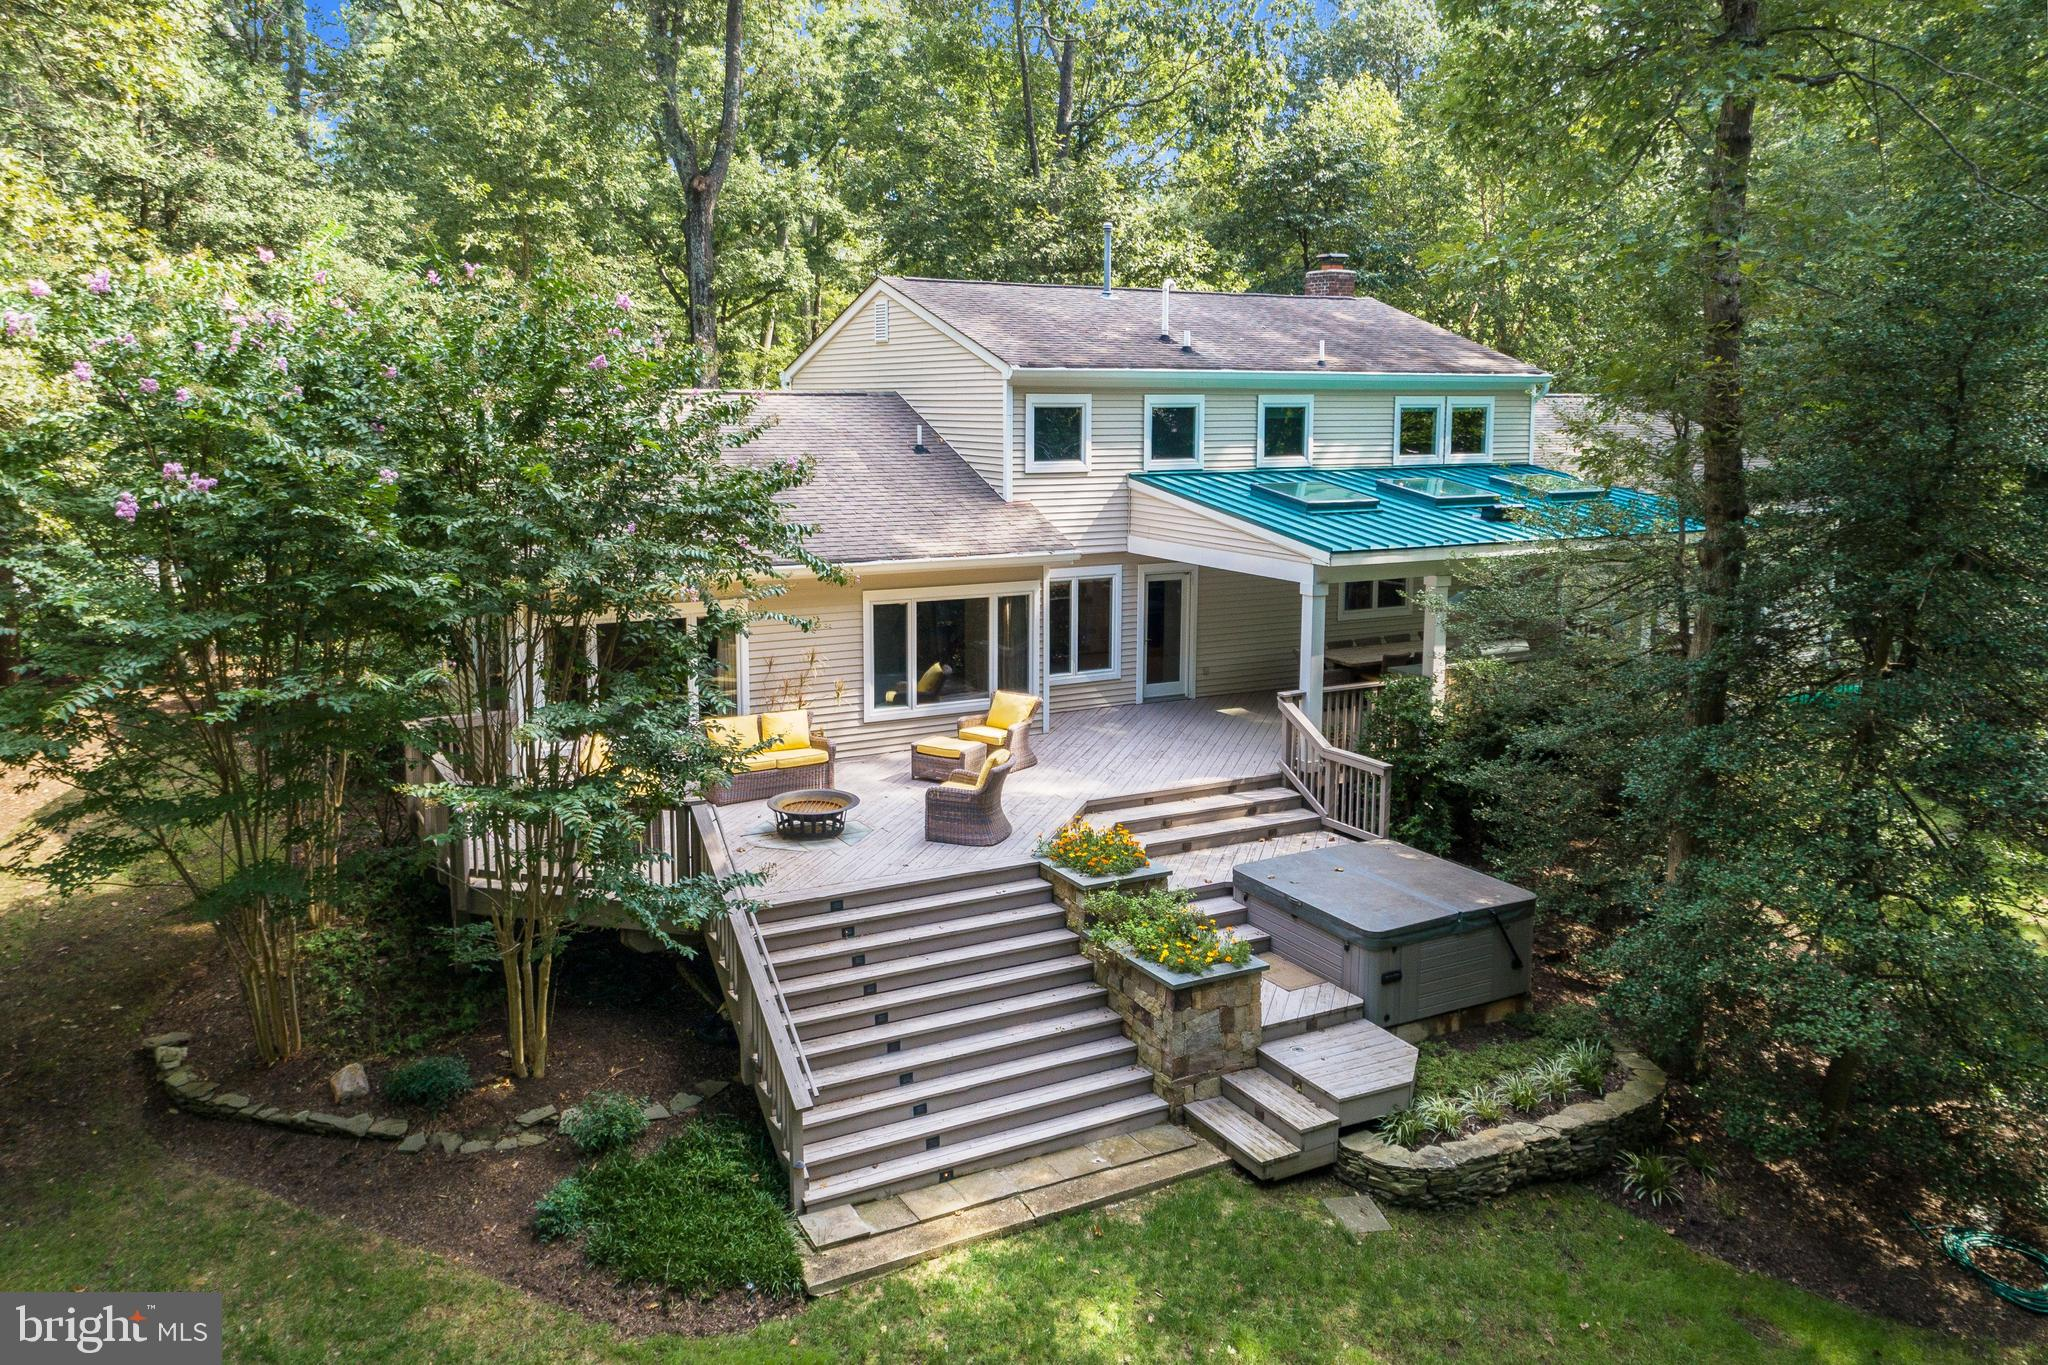 11719 BLUE SMOKE TRAIL, RESTON, VA 20191